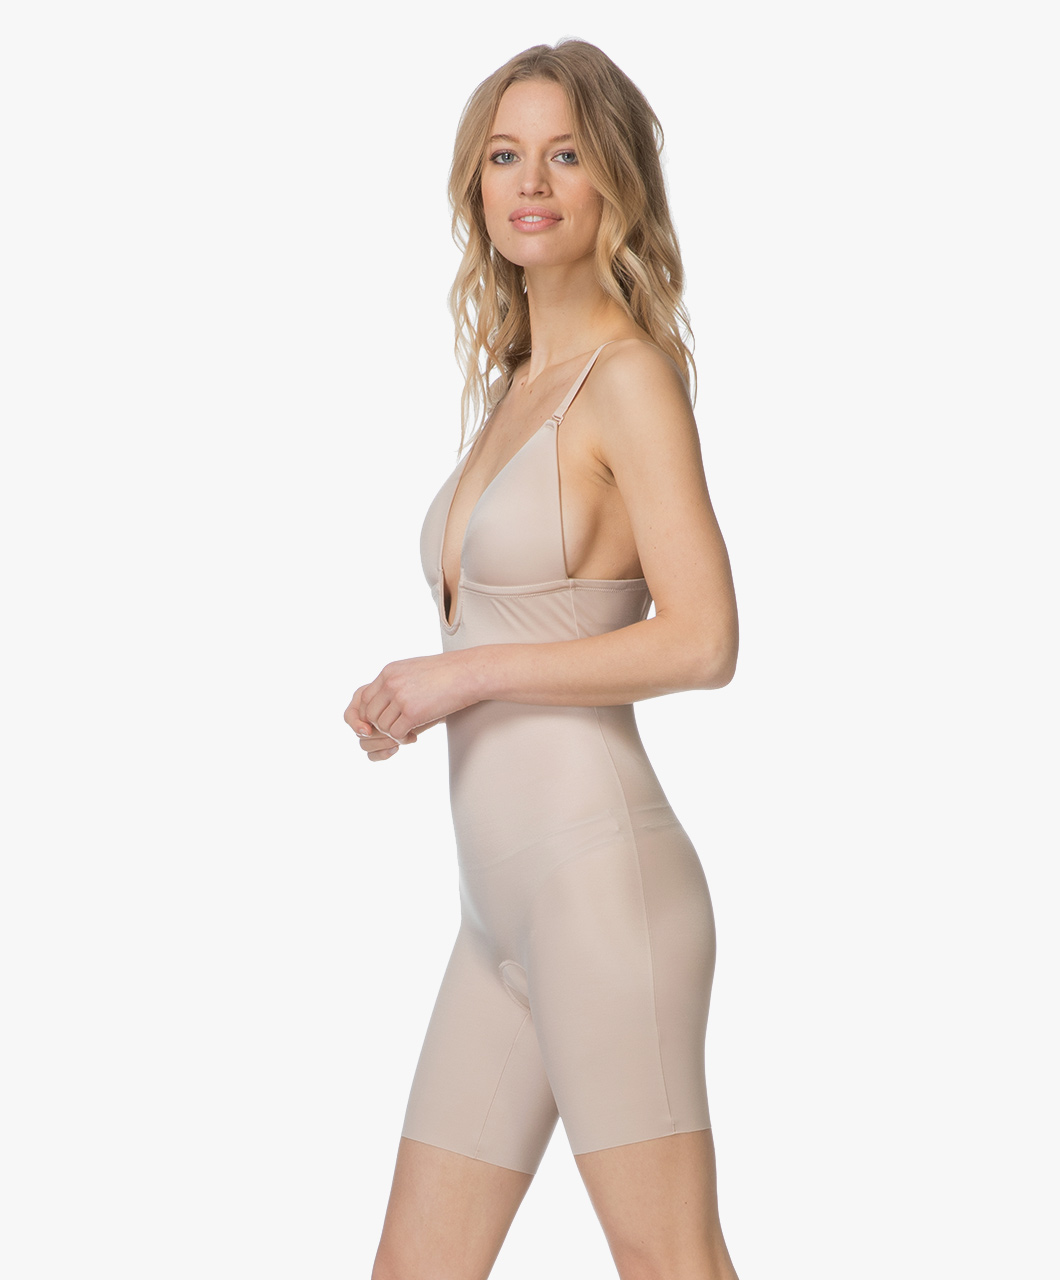 e22b4e3a299 SPANX® Suit Your Fancy Mid-Thigh Bodysuit Plunge - Champagne Beige - spx  10157r 1603 - champagne